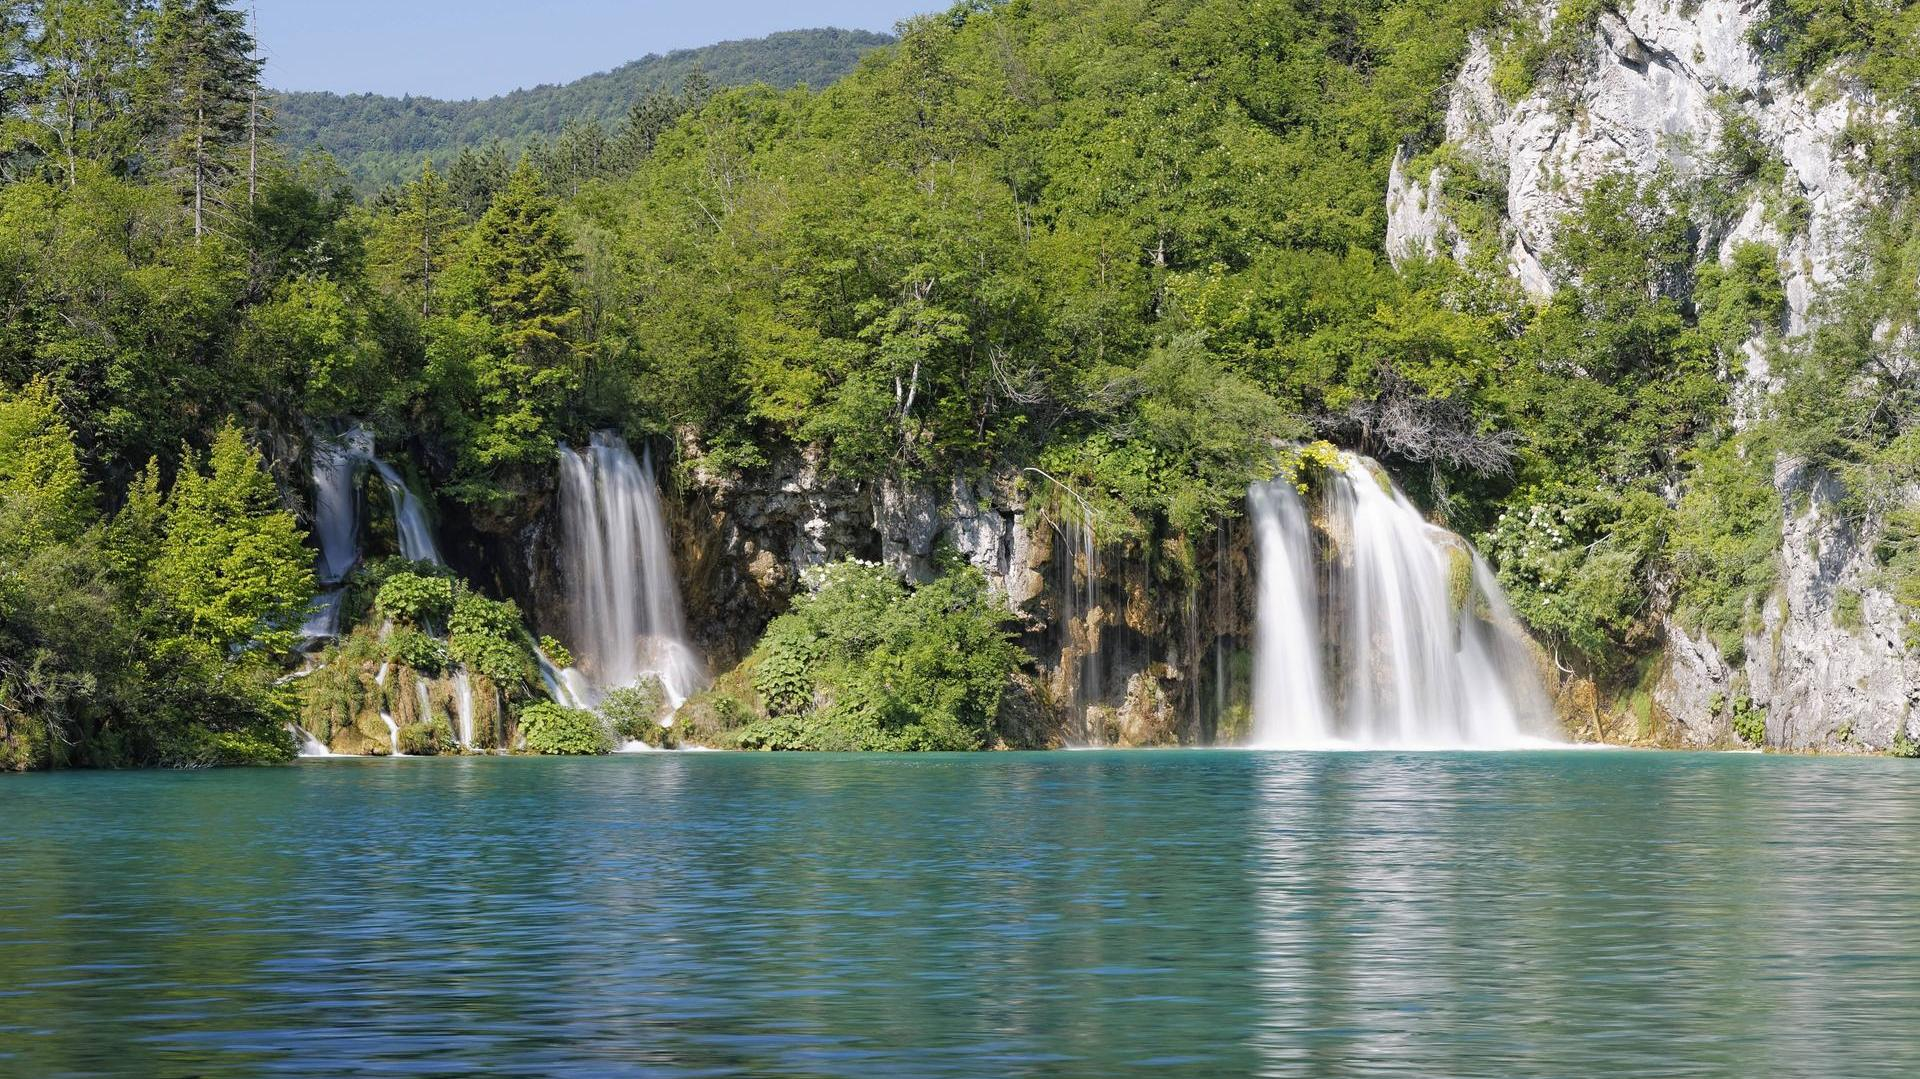 Plitvicer Seen: 16 Seen in Kroatien, ein Nationalpark und Winnetou